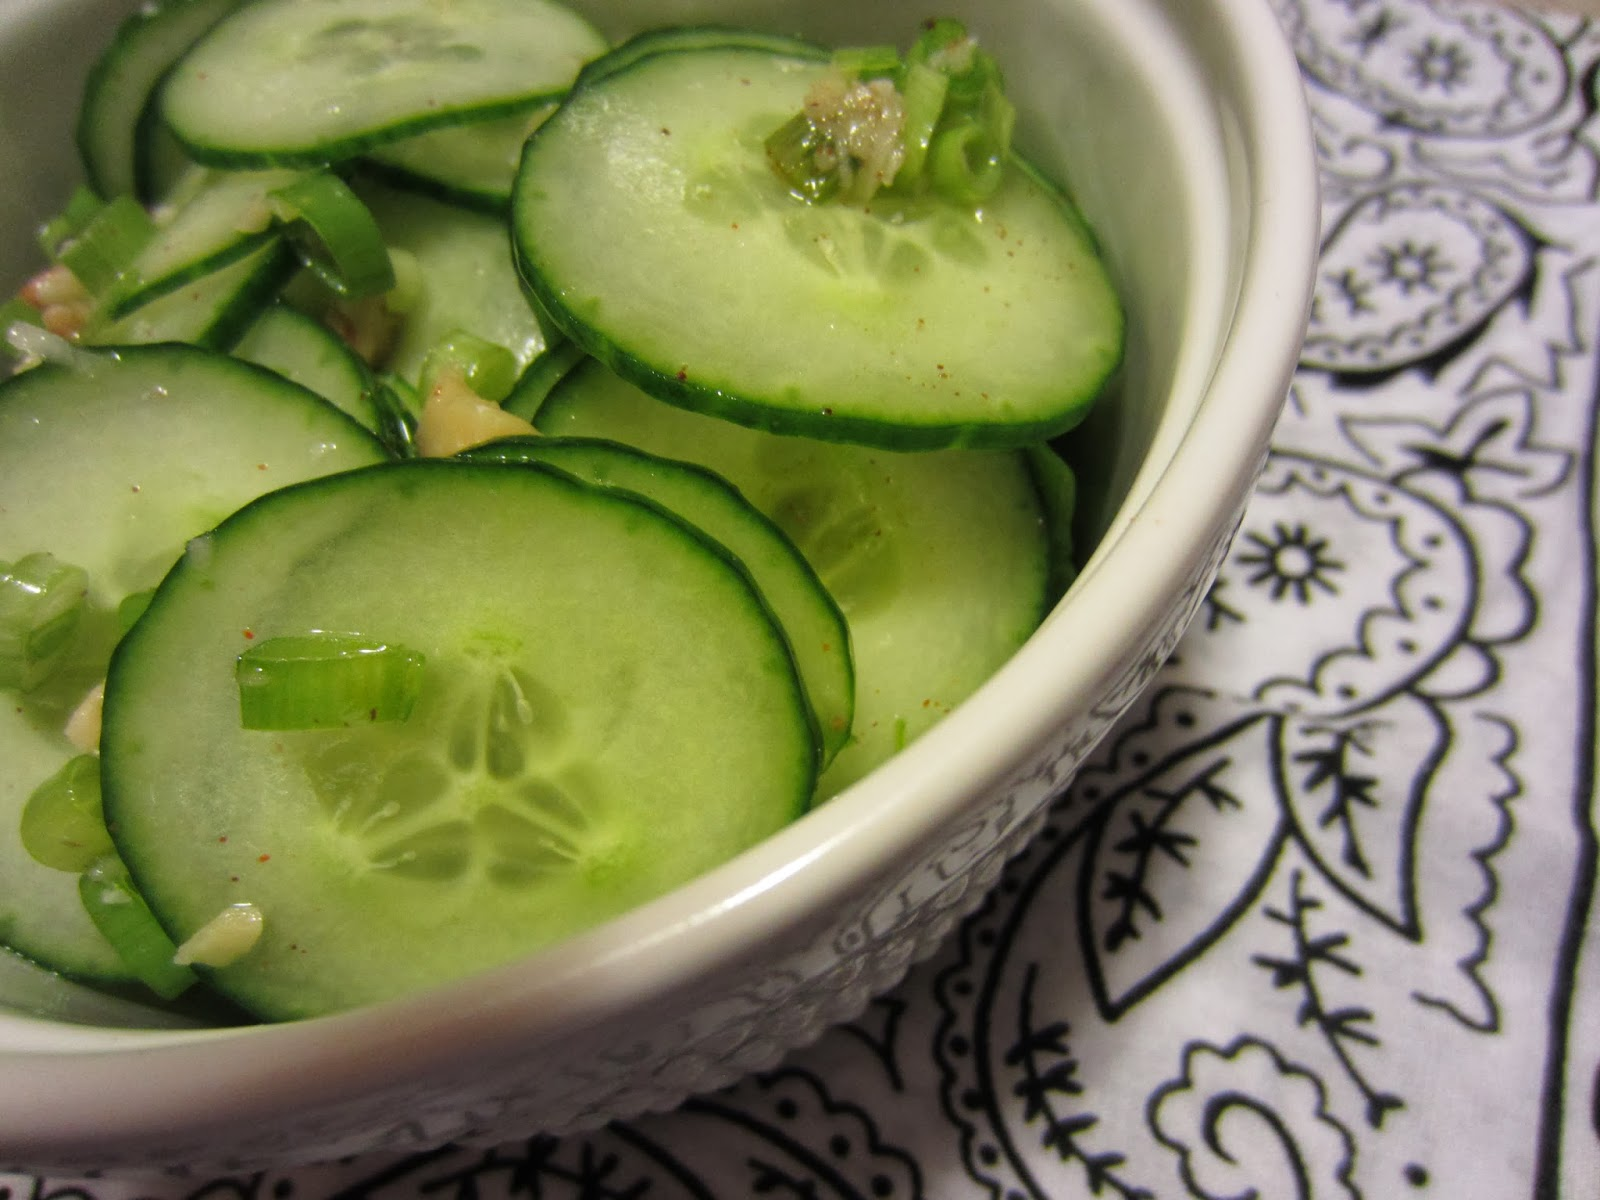 http://www.reneeskitchenadventures.com/2013/11/asian-style-cucumber-salad.html